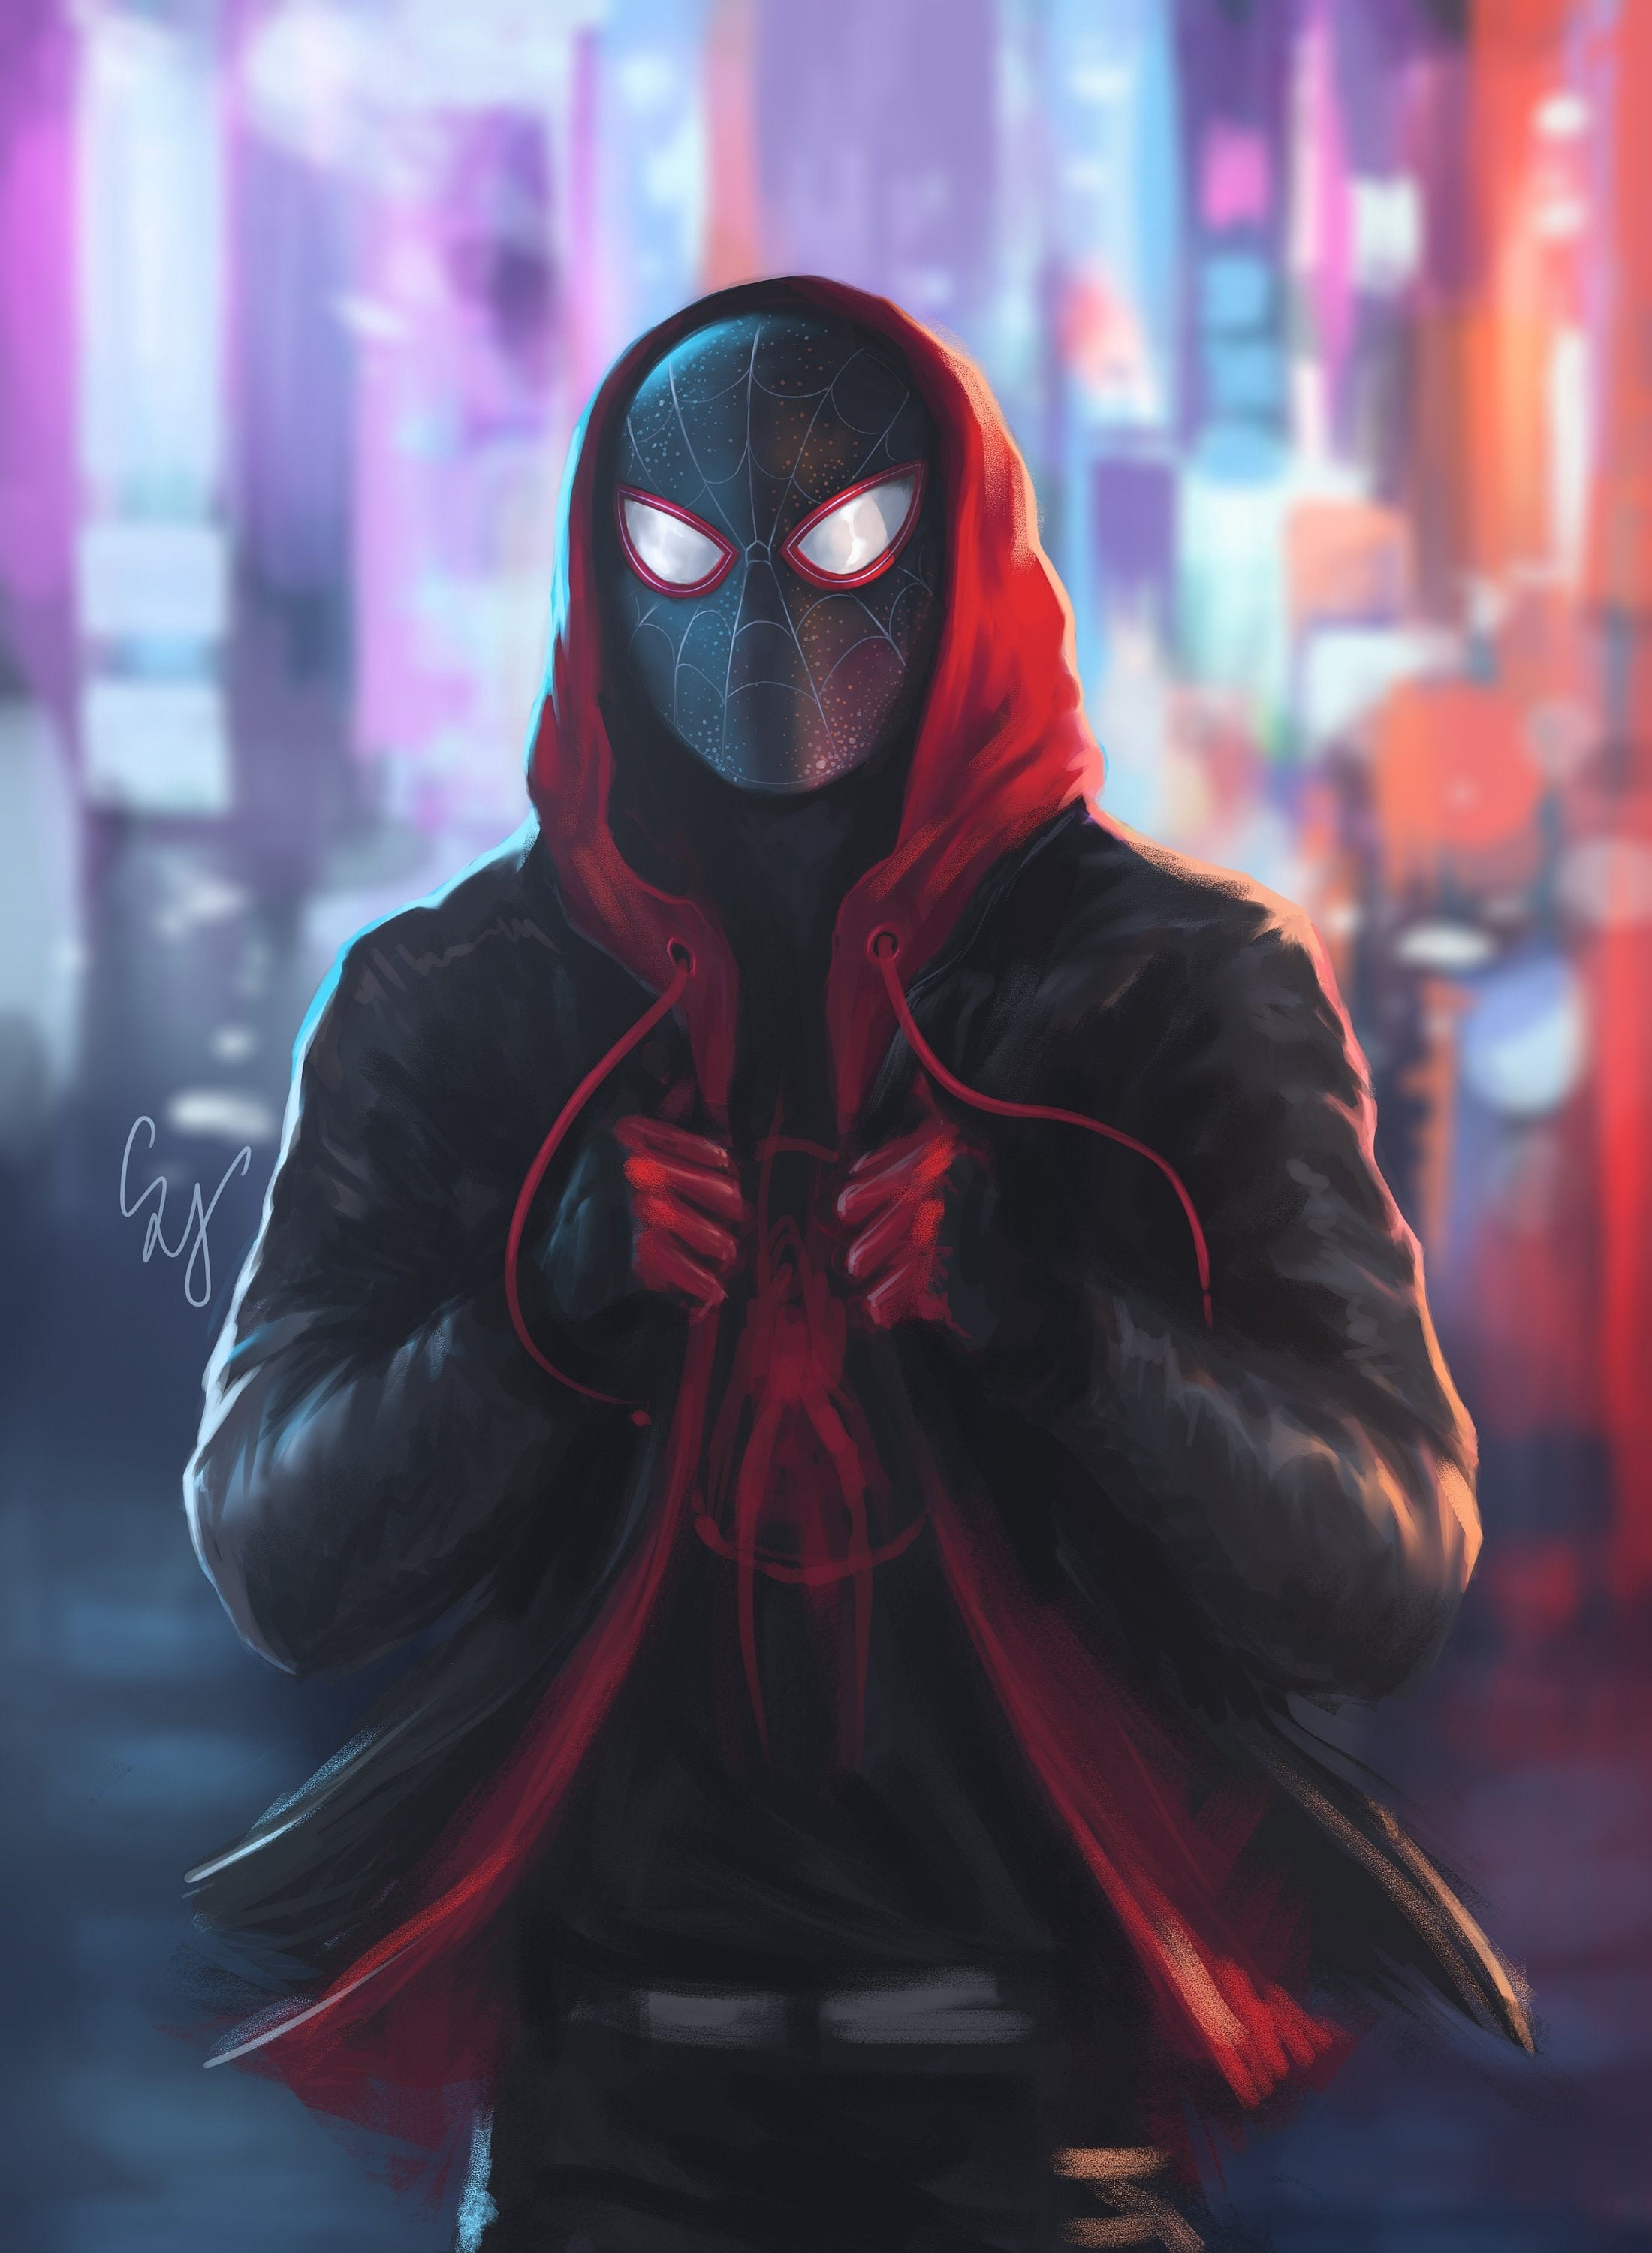 Cool Miles Morales Wallpapers - KoLPaPer - Awesome Free HD ...